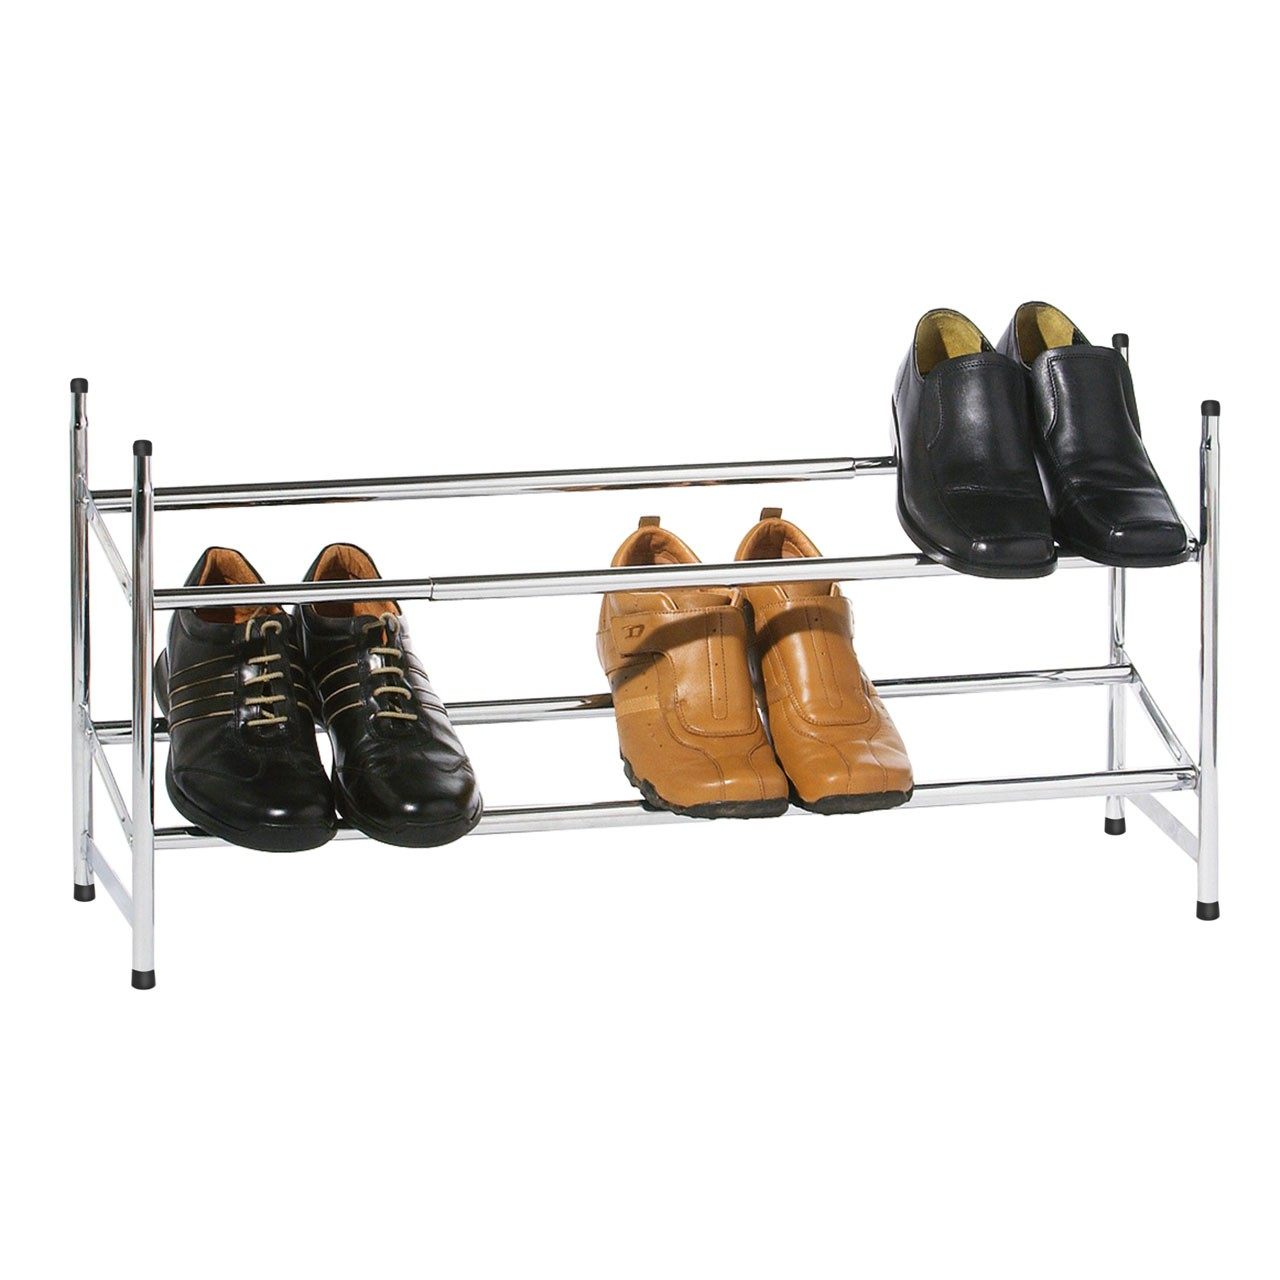 Prime Furnishing 2-Tier Extendable & Stackable Frame Shoe Rack